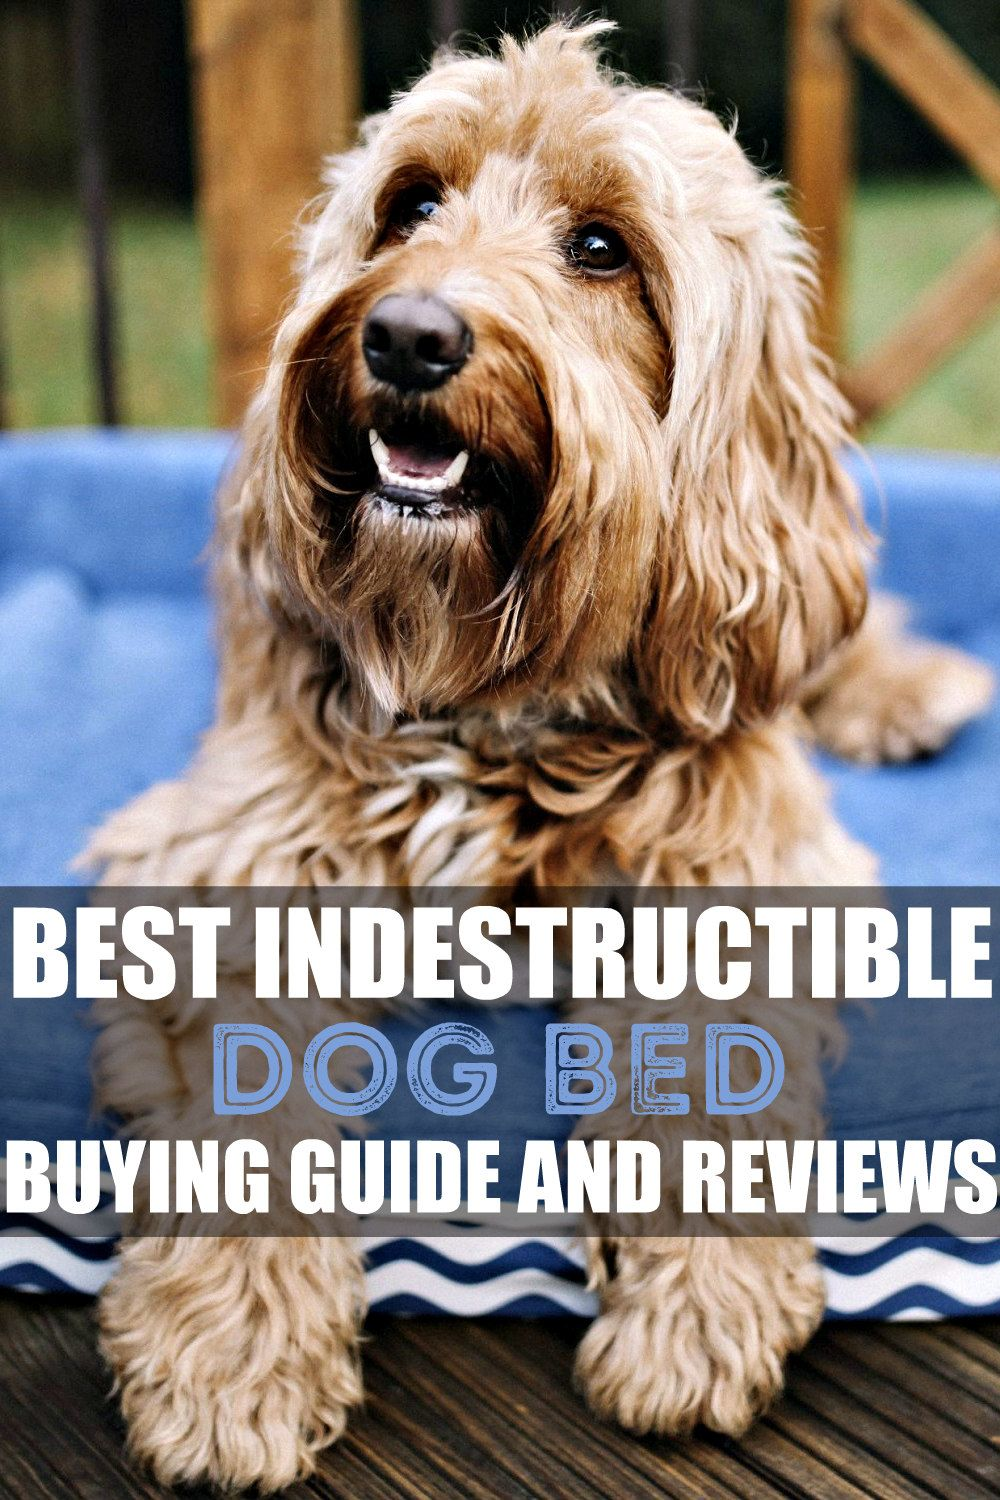 Best Indestructible Dog Bed (January 2020) Buyer's Guide